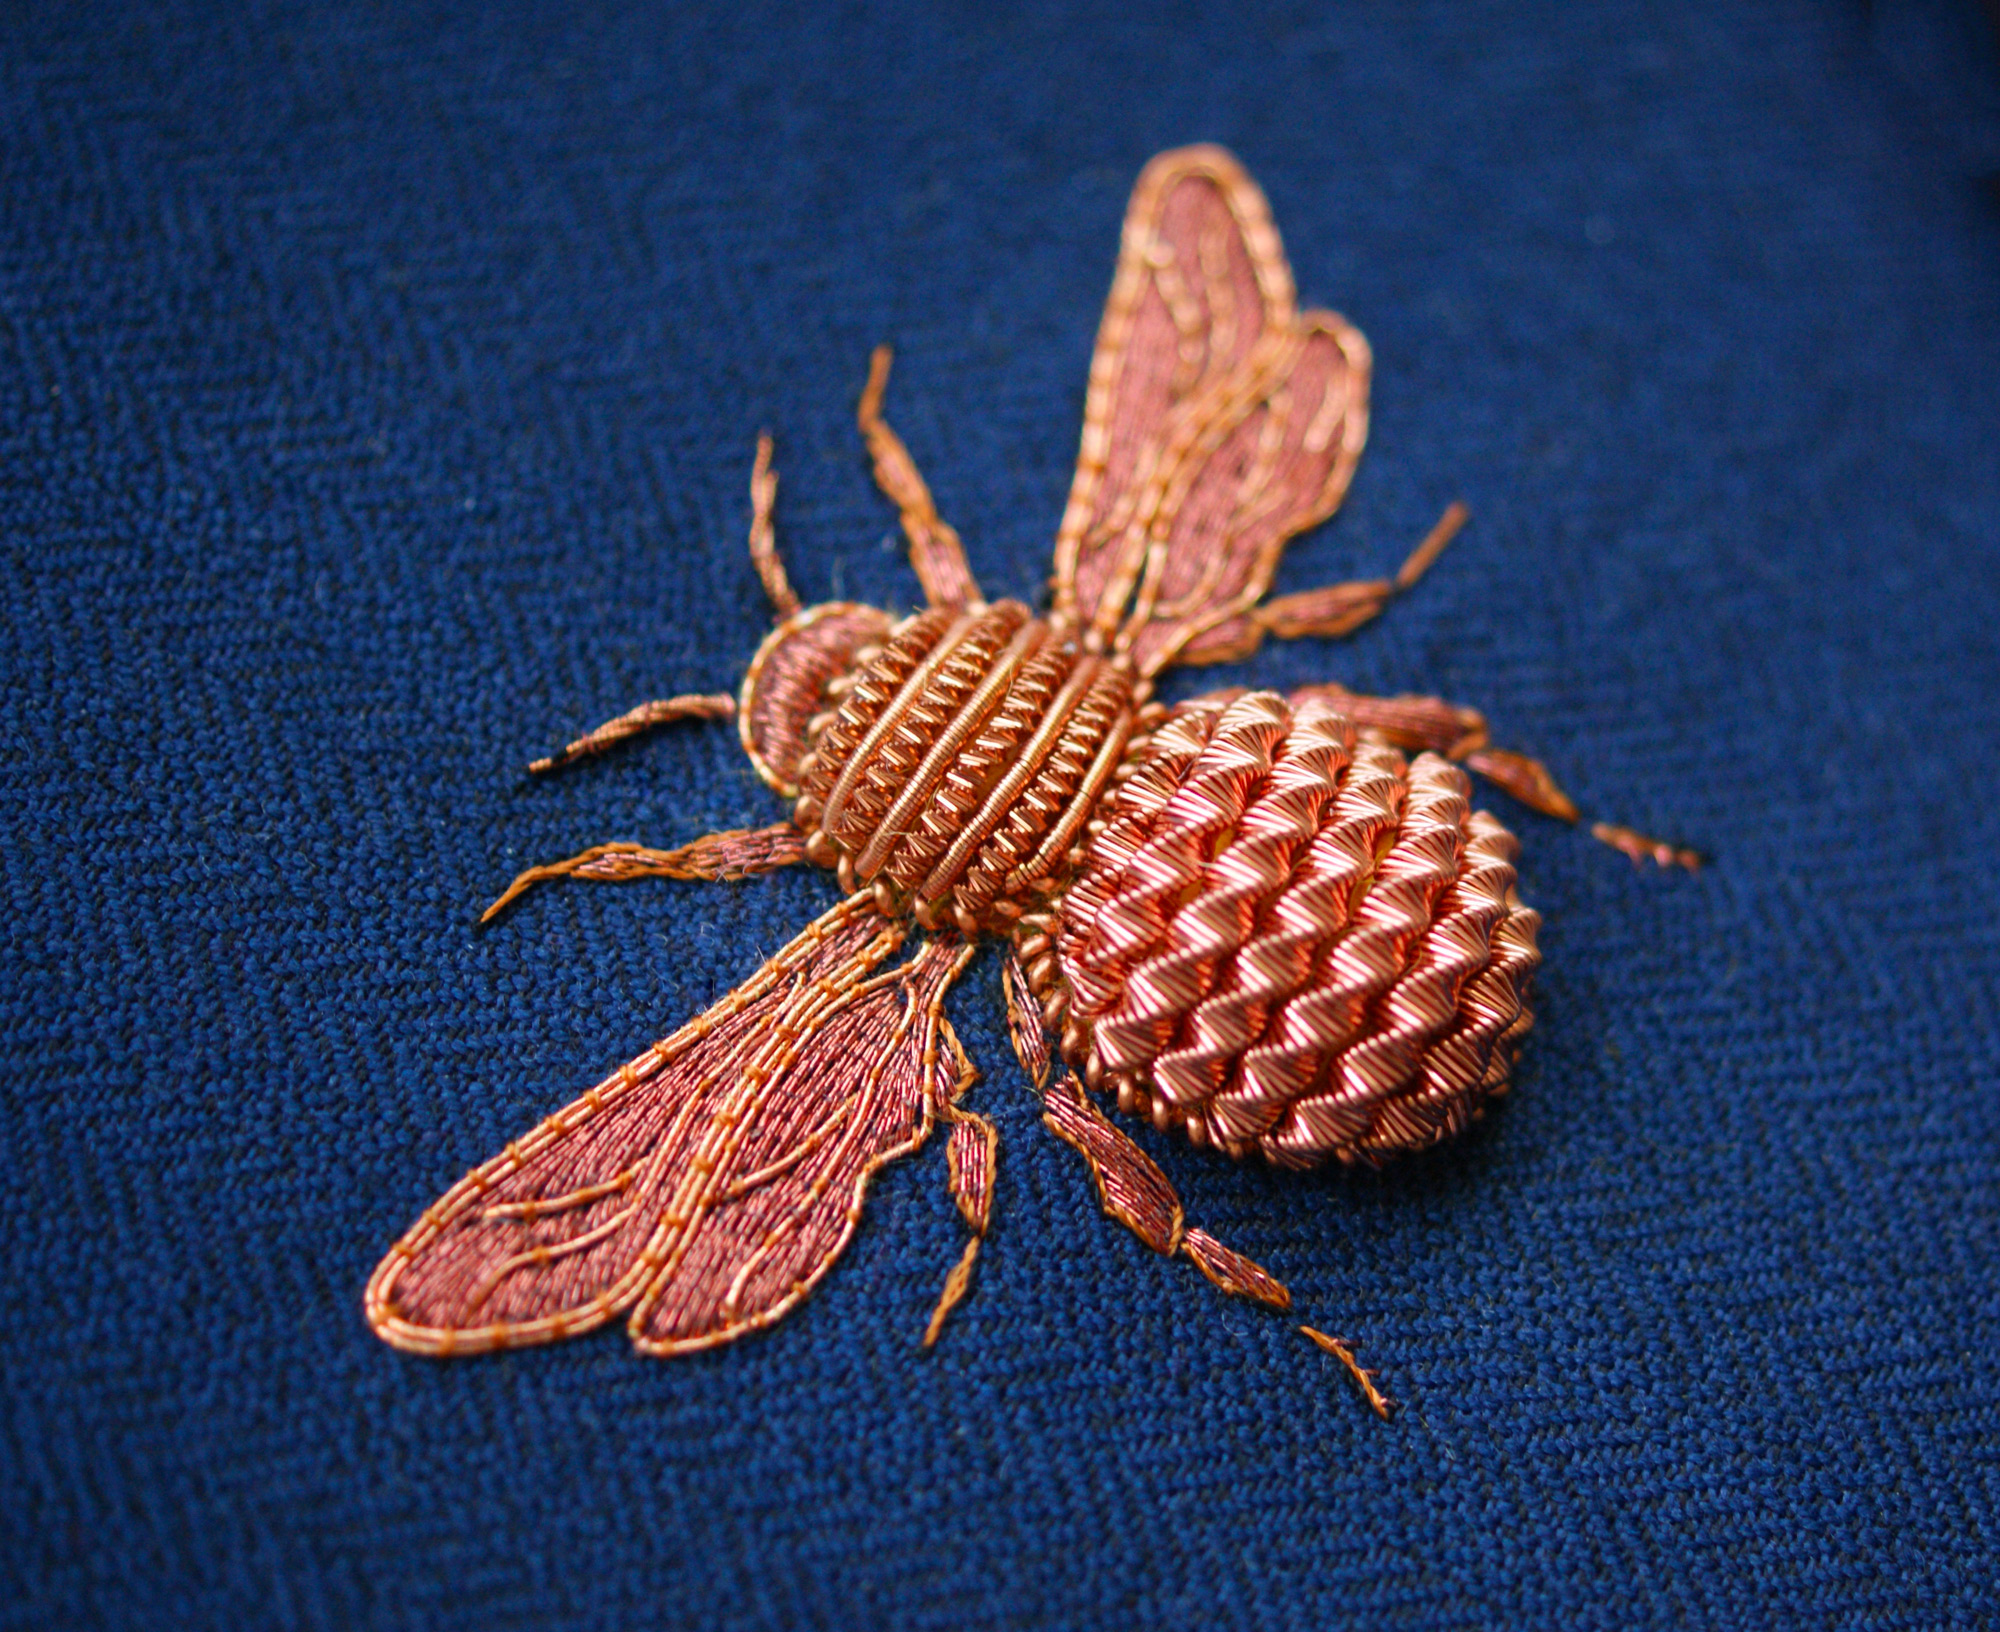 Elaborate Embroidery by Laura Baverstock Forms Insects and Animals from Precious Metals and Colored Threads | Colossal